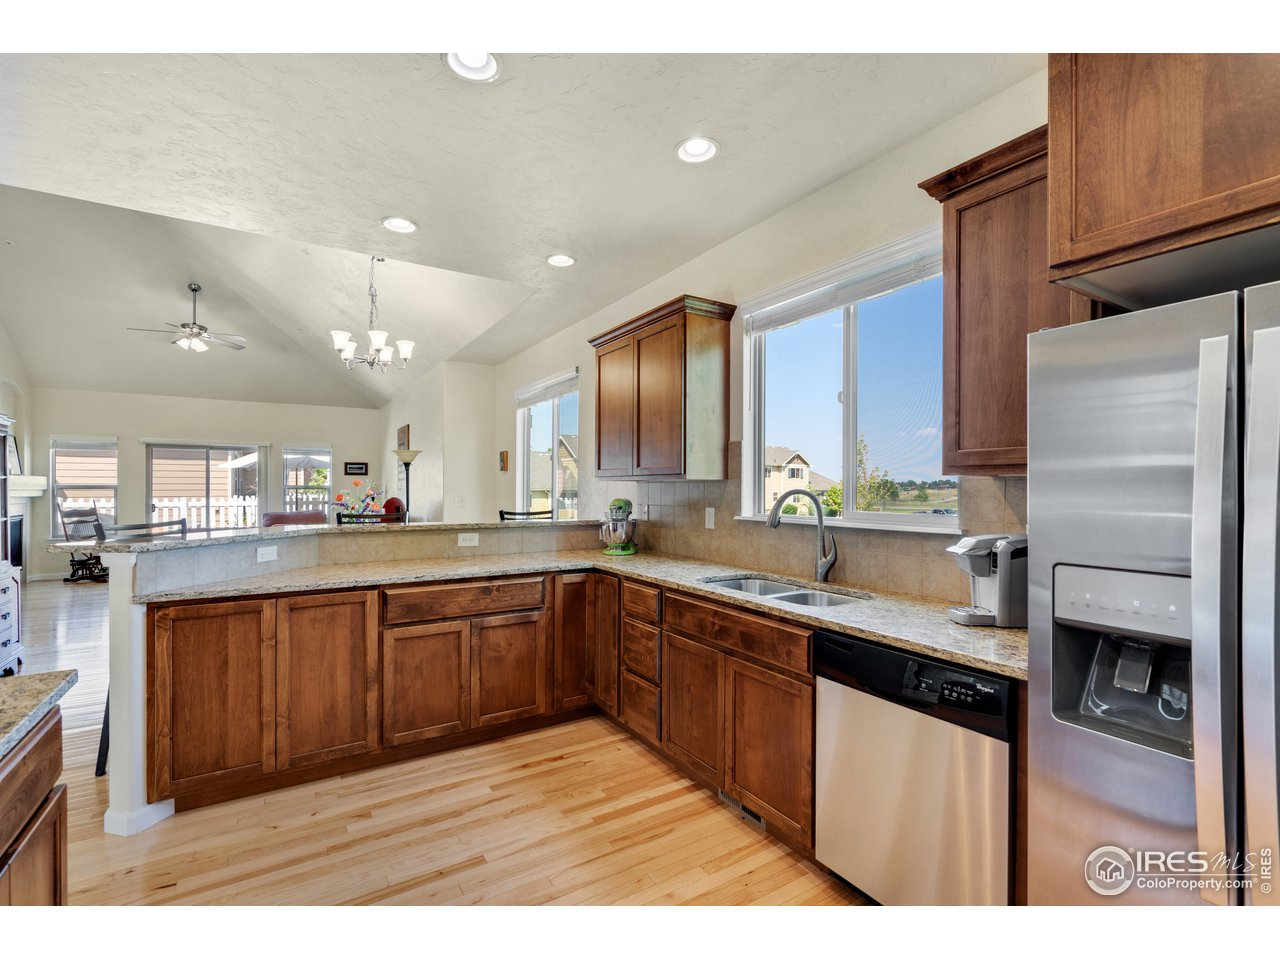 stainless appliances ,  kitchen window looks out to the park